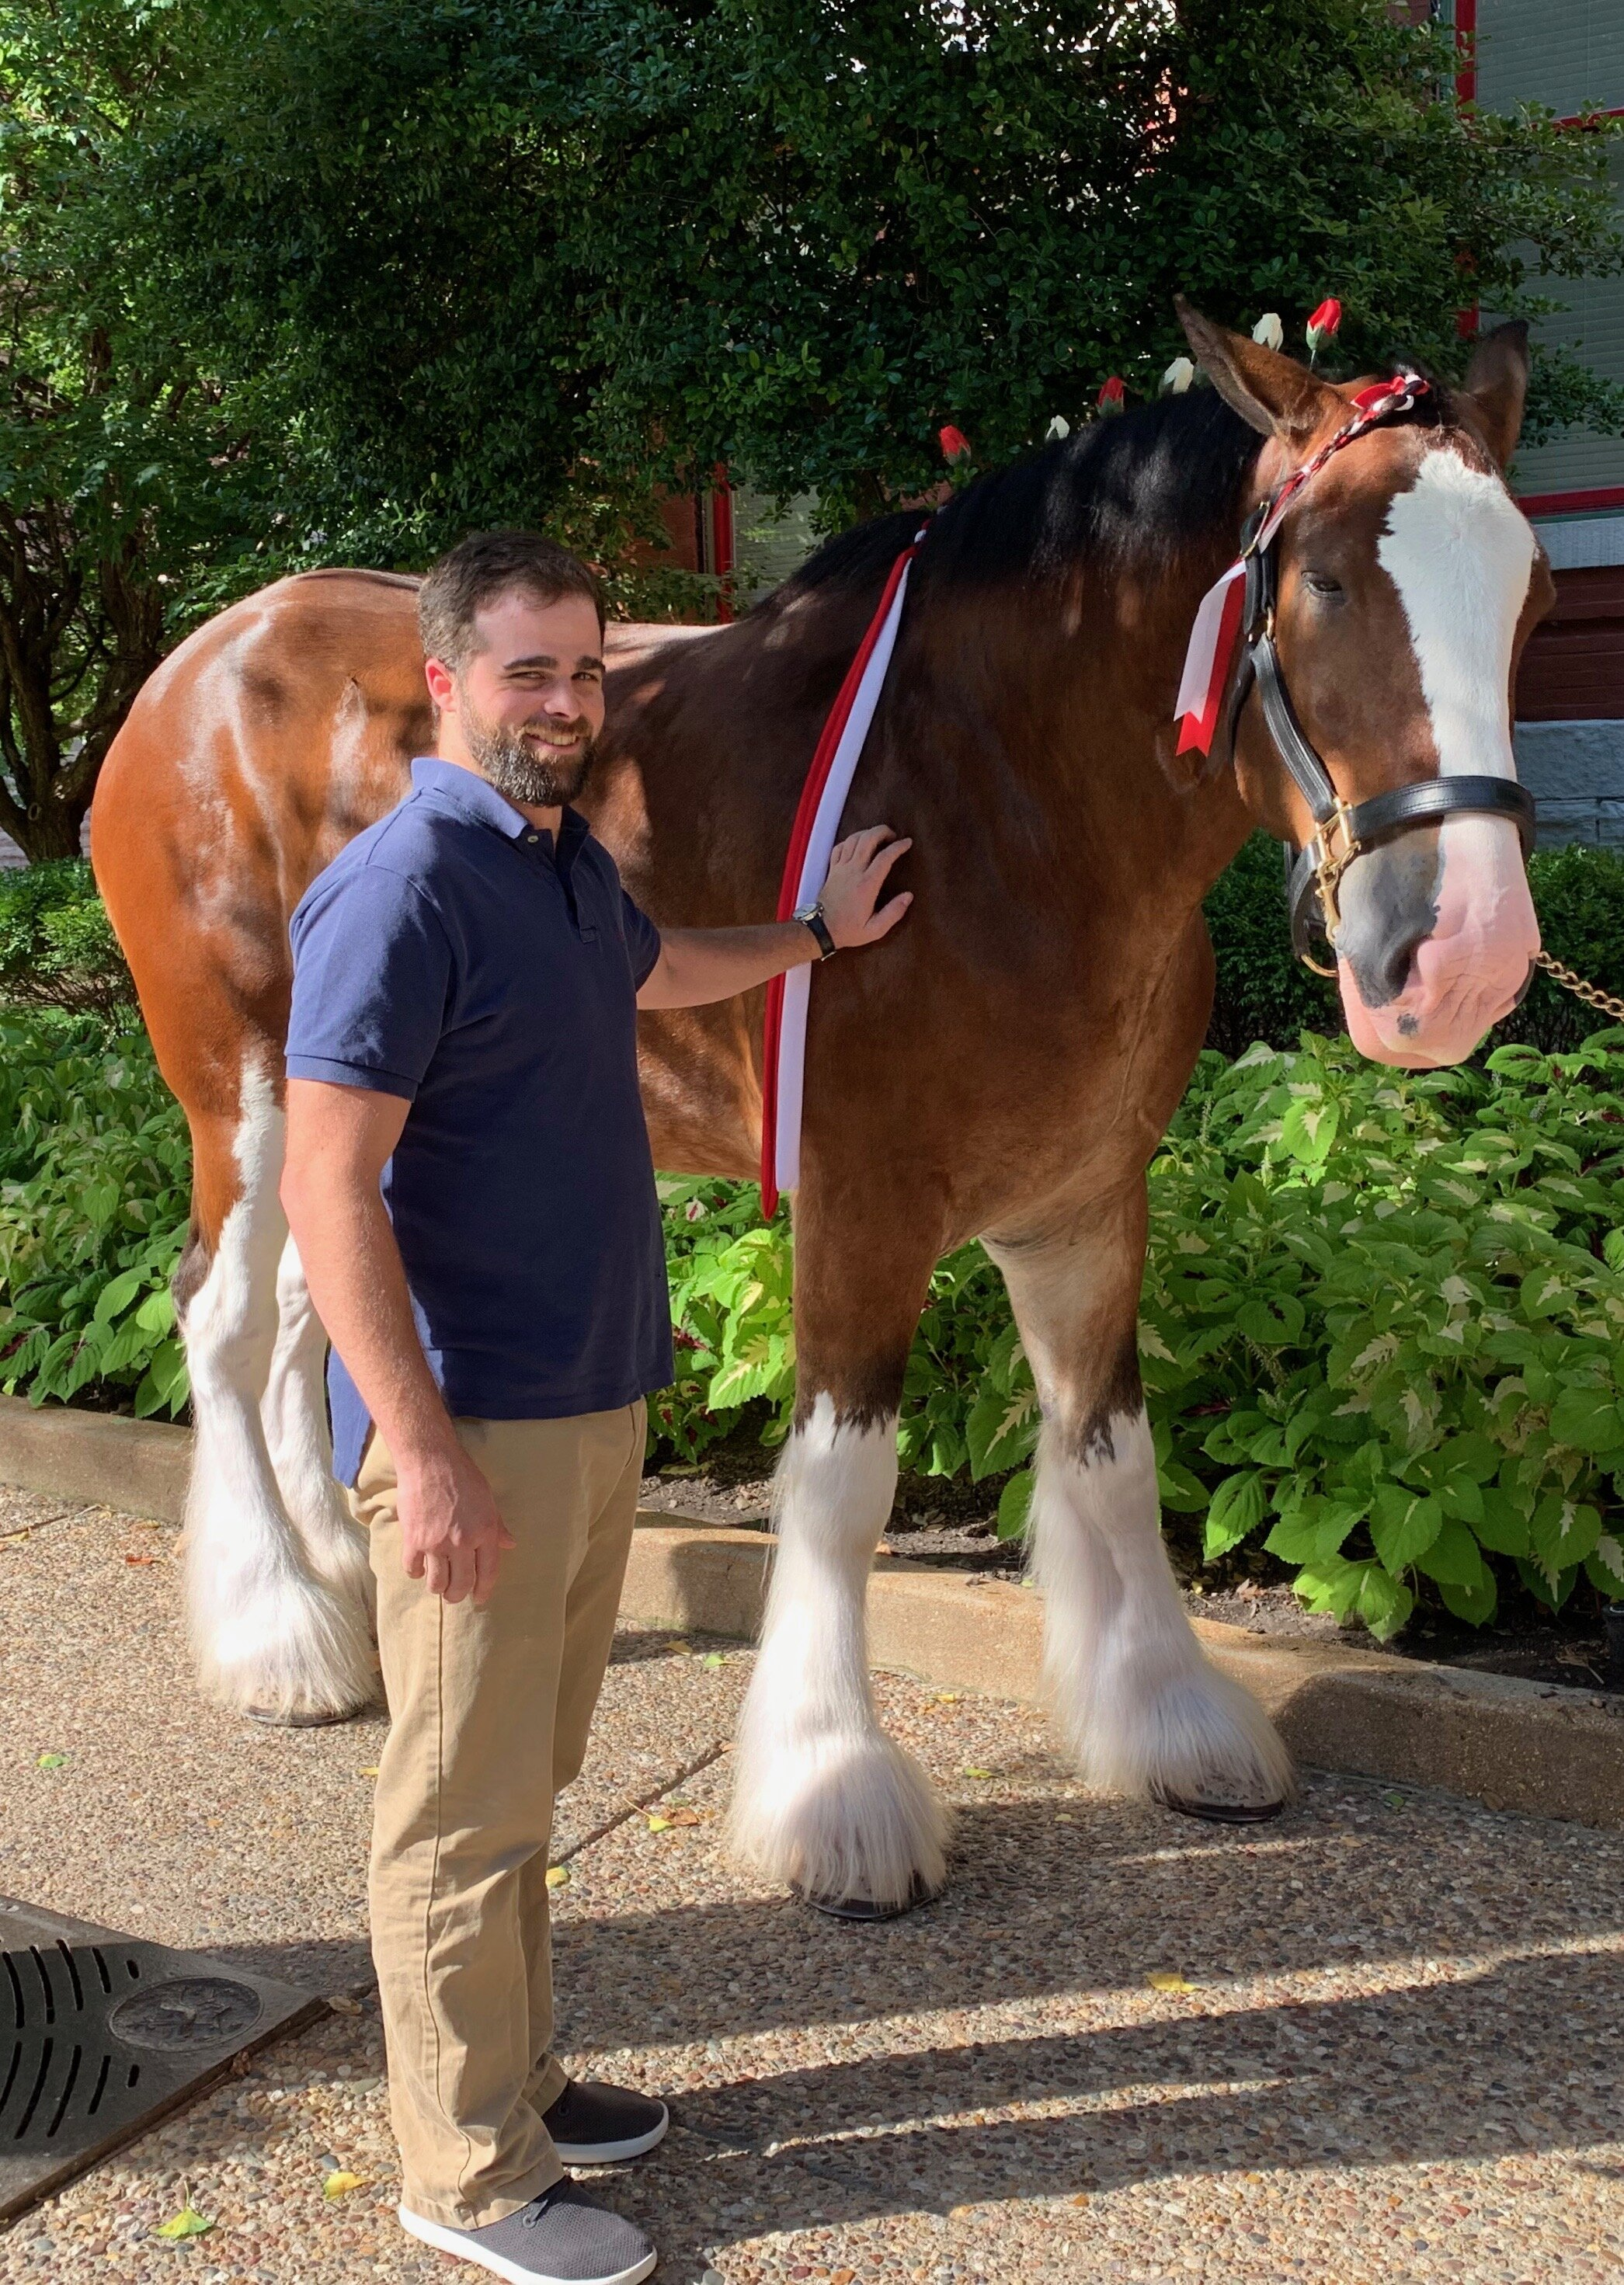 Connor clydesdales.jpeg